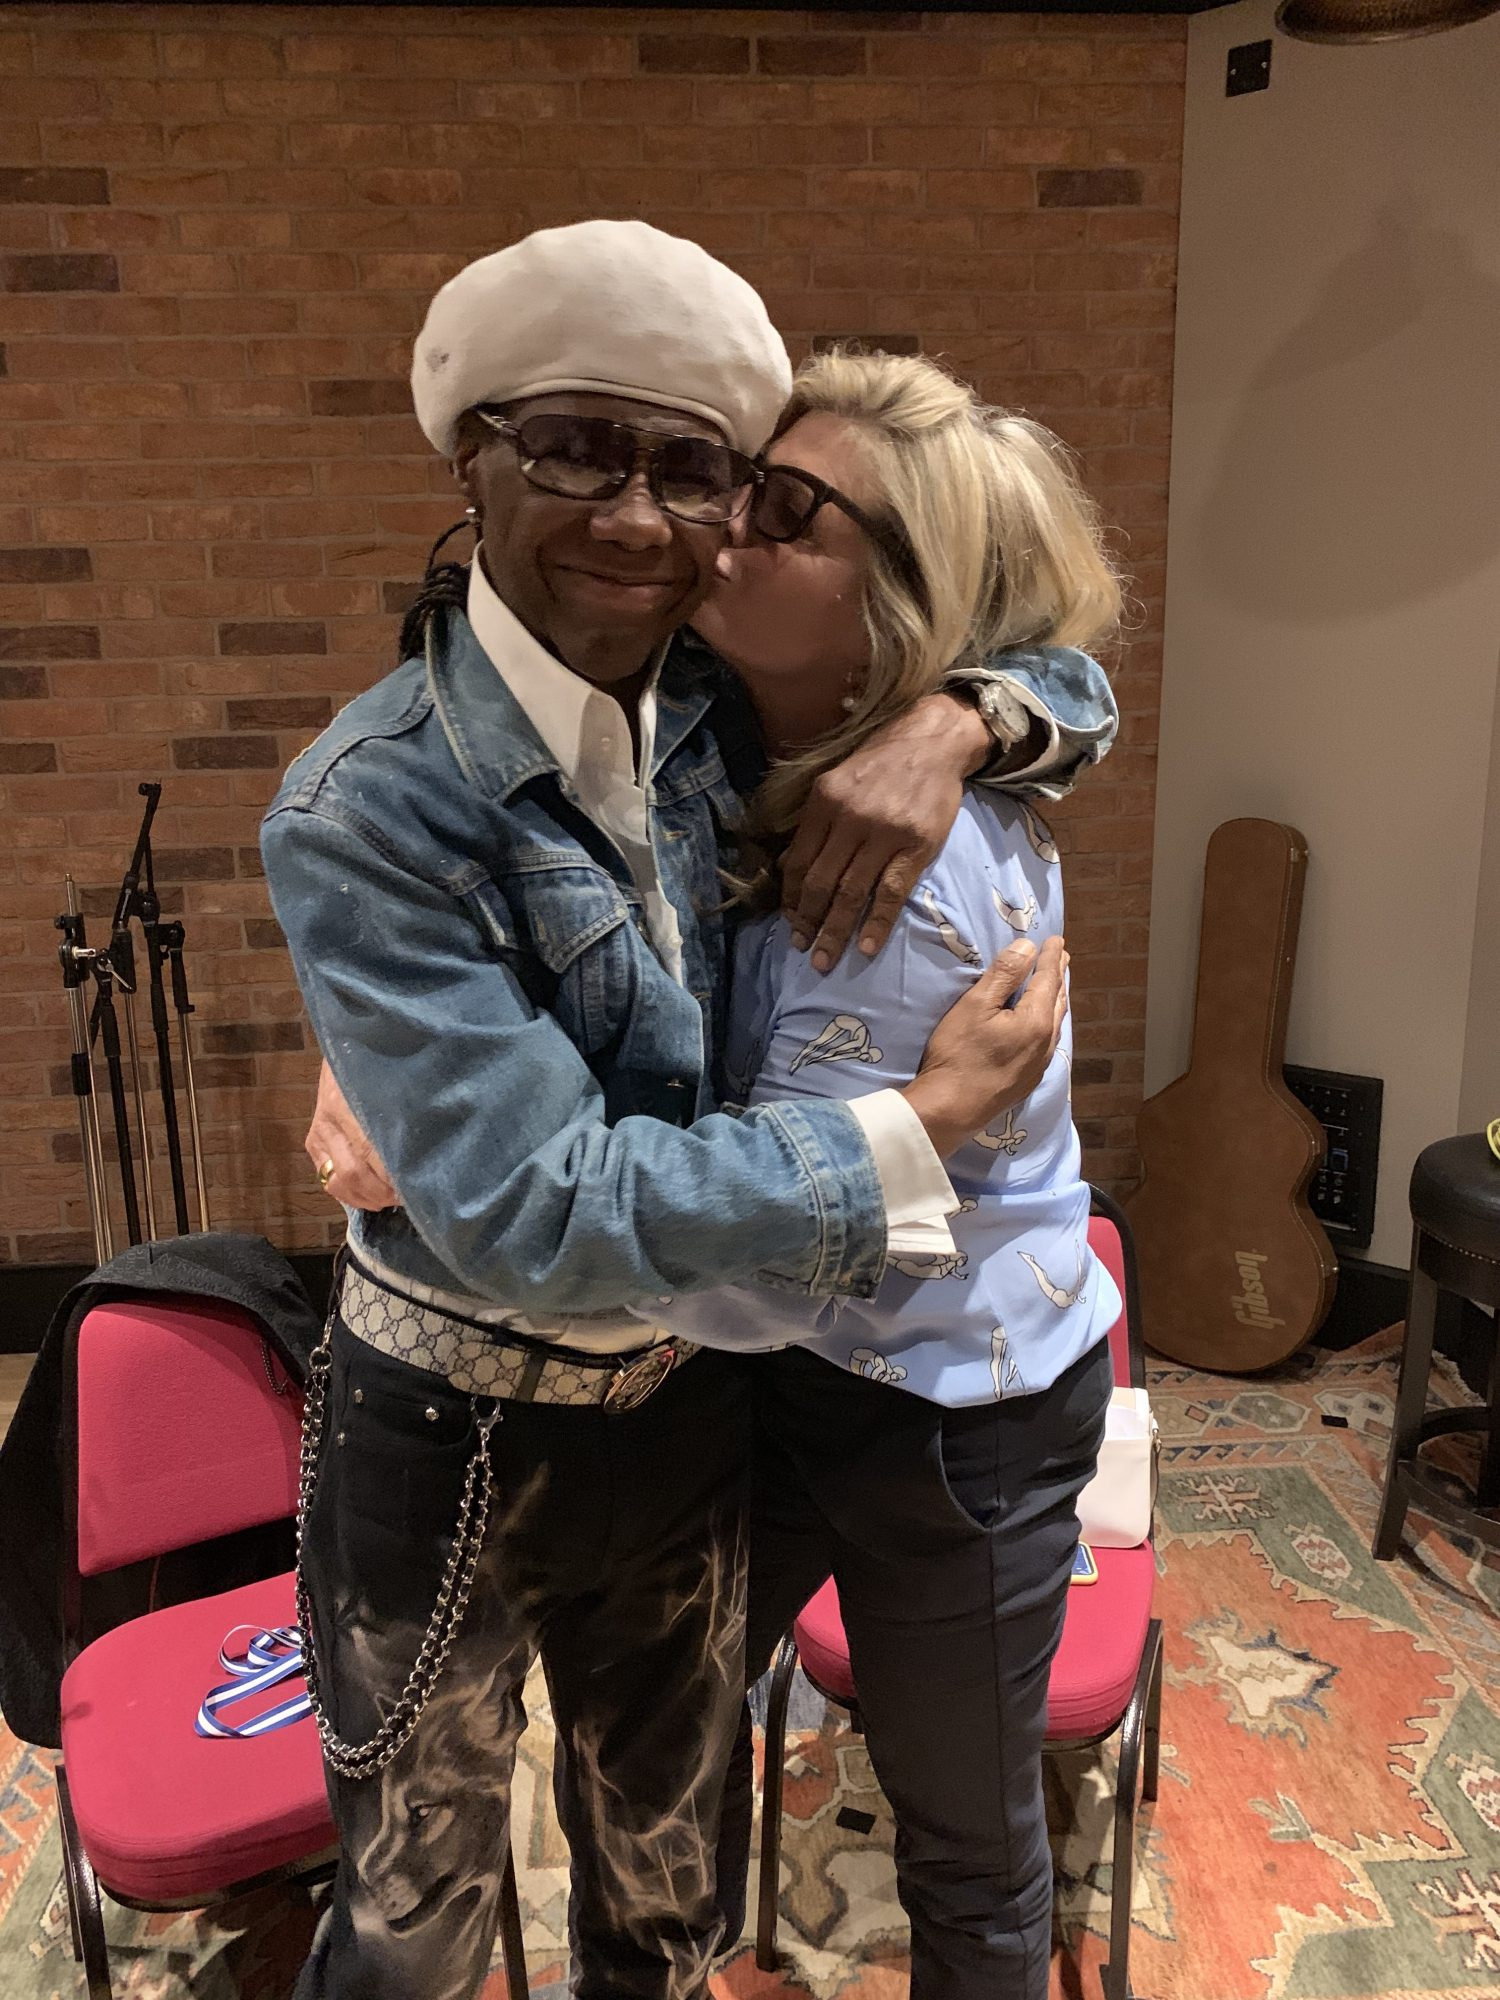 susannah constantine and Nile Rodgers